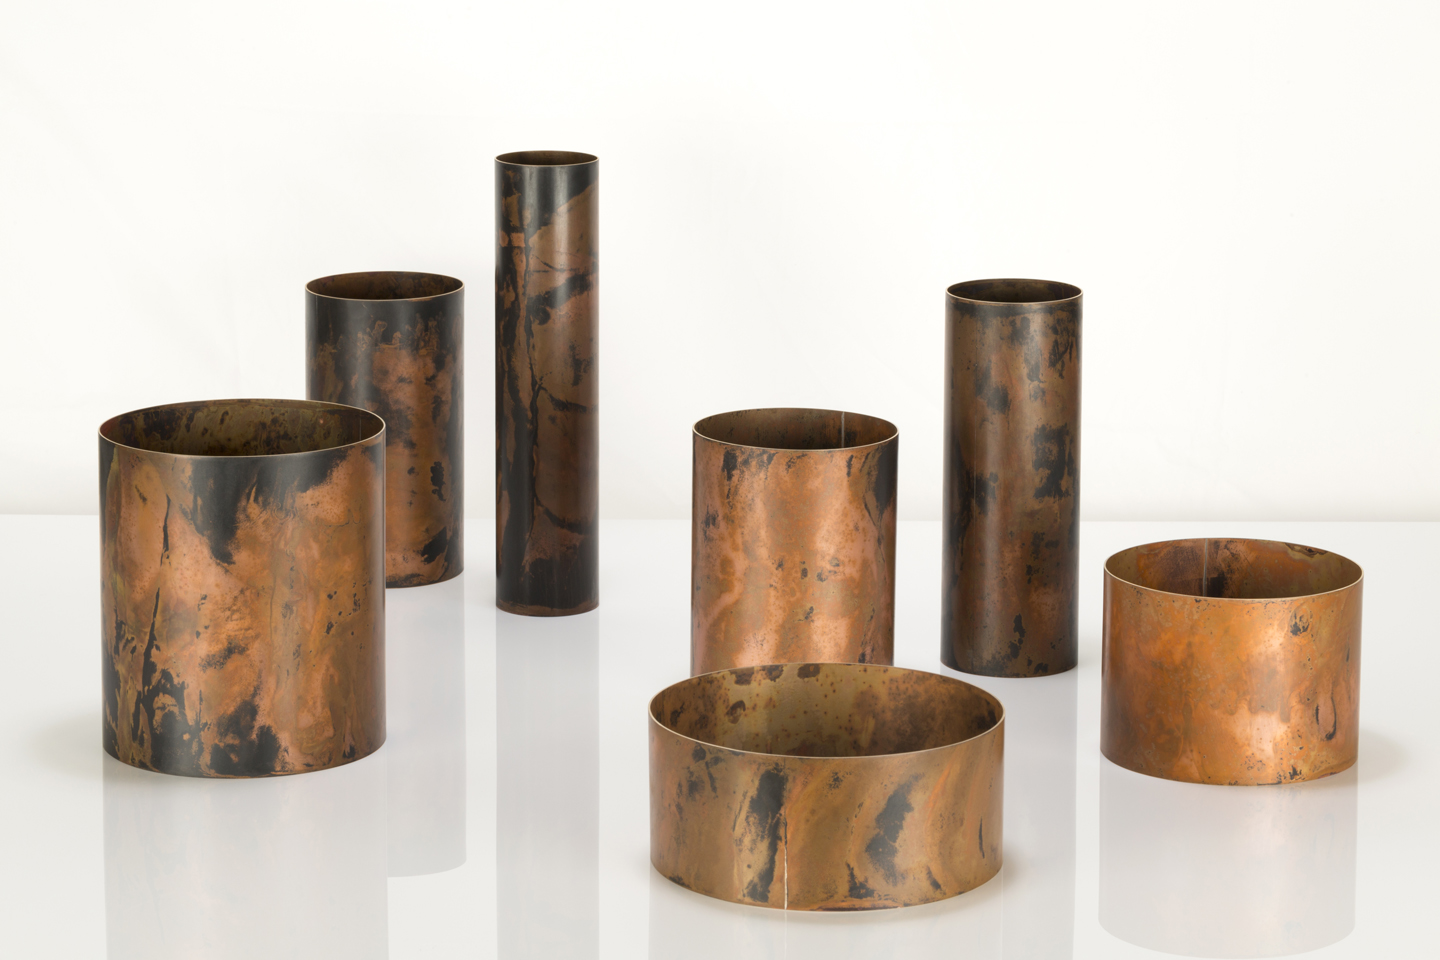 Juliette_Bigley_Cylinders_patinated_gilding_metal_2018_4.JPG